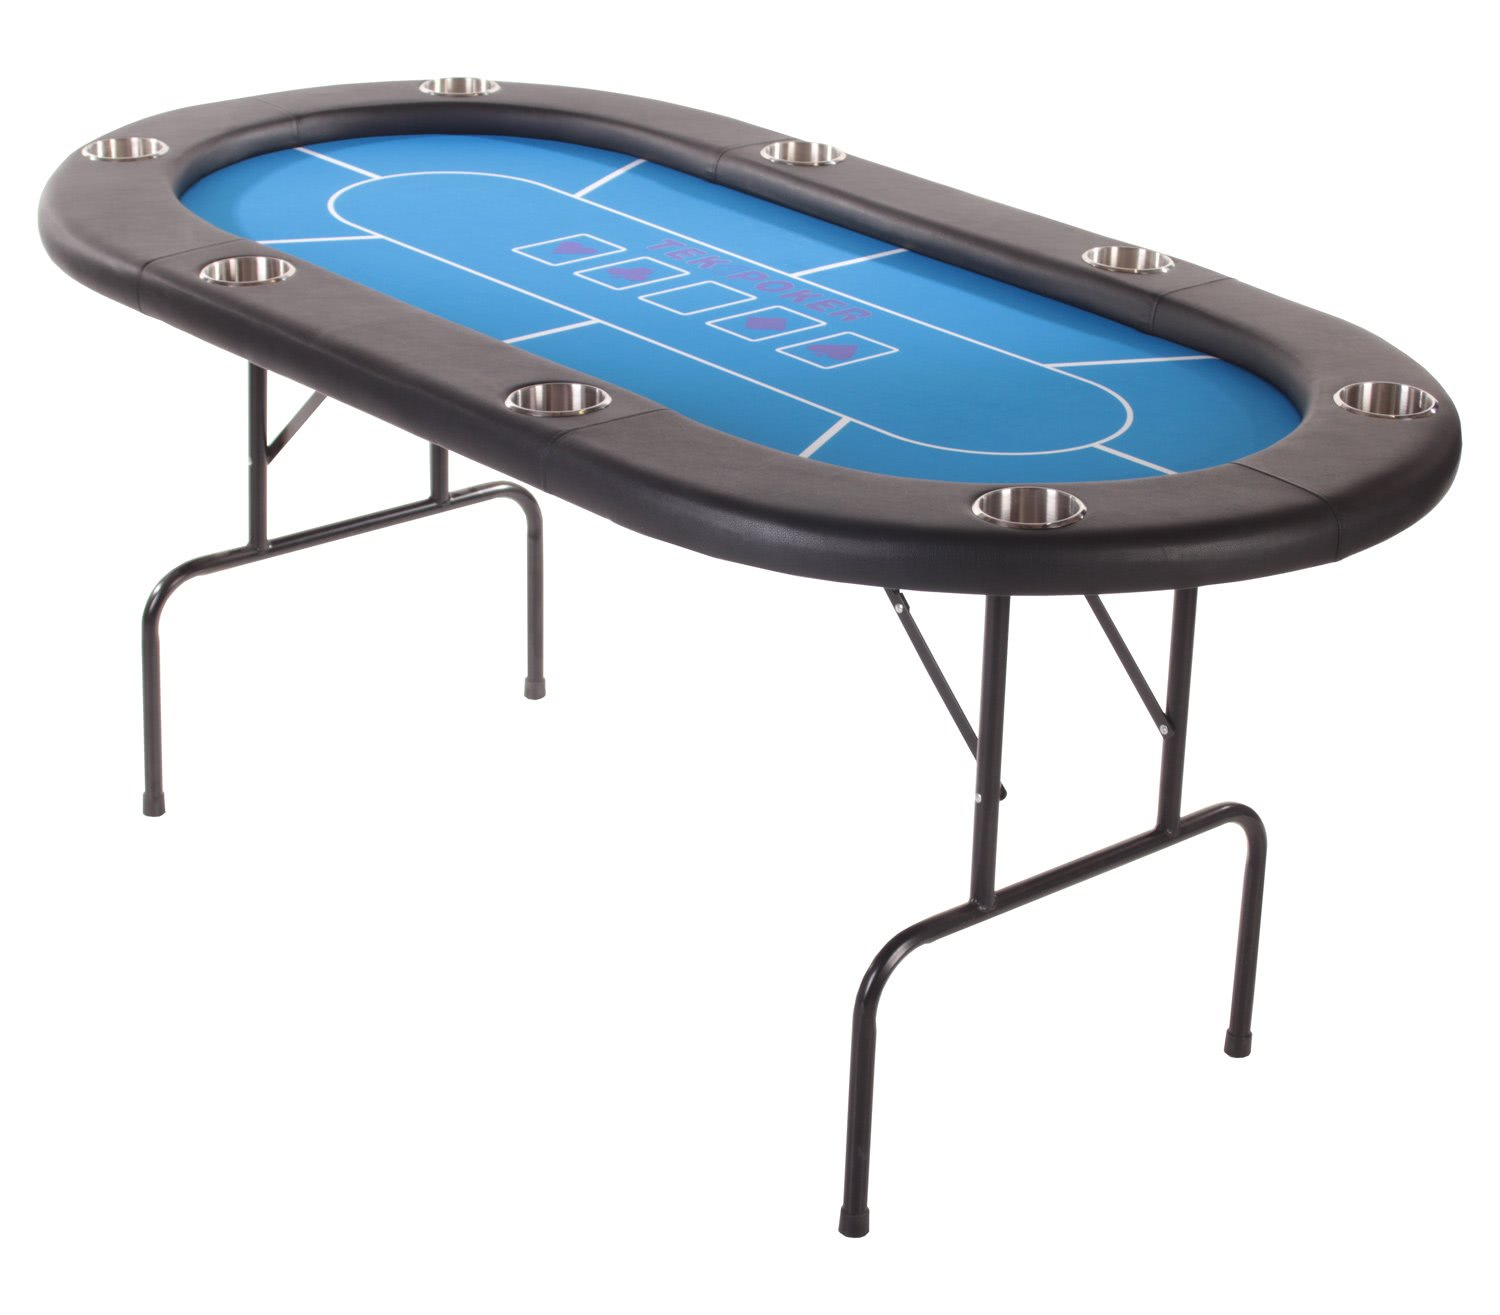 Folding Stainless Steel Table picture on 6ft poker table with Folding Stainless Steel Table, Folding Table d52c02f807727410e499dd1c48deedfd